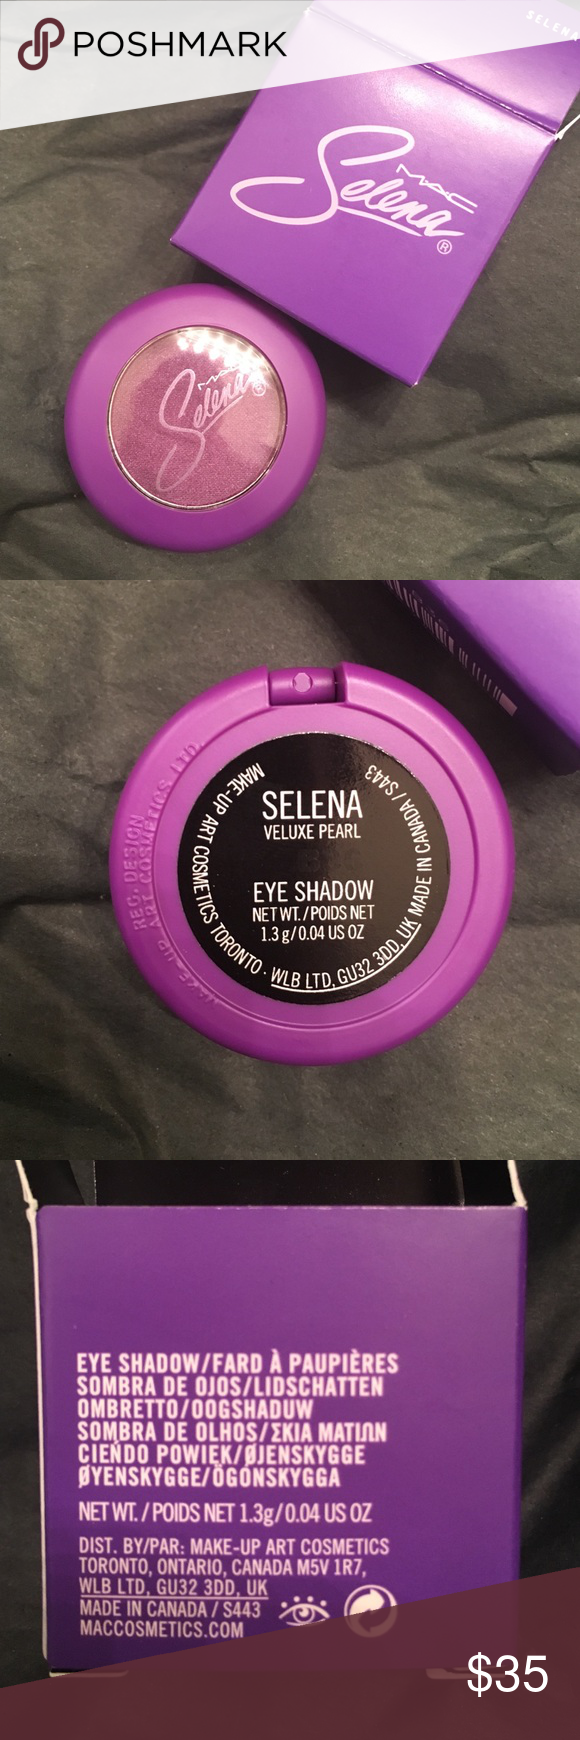 MAC Selena Collection Selena Eyeshadow Brand new in box. Never swatched! Price is Firm! Feel free to ask any questions! Thanks! MAC Cosmetics Makeup Eyeshadow